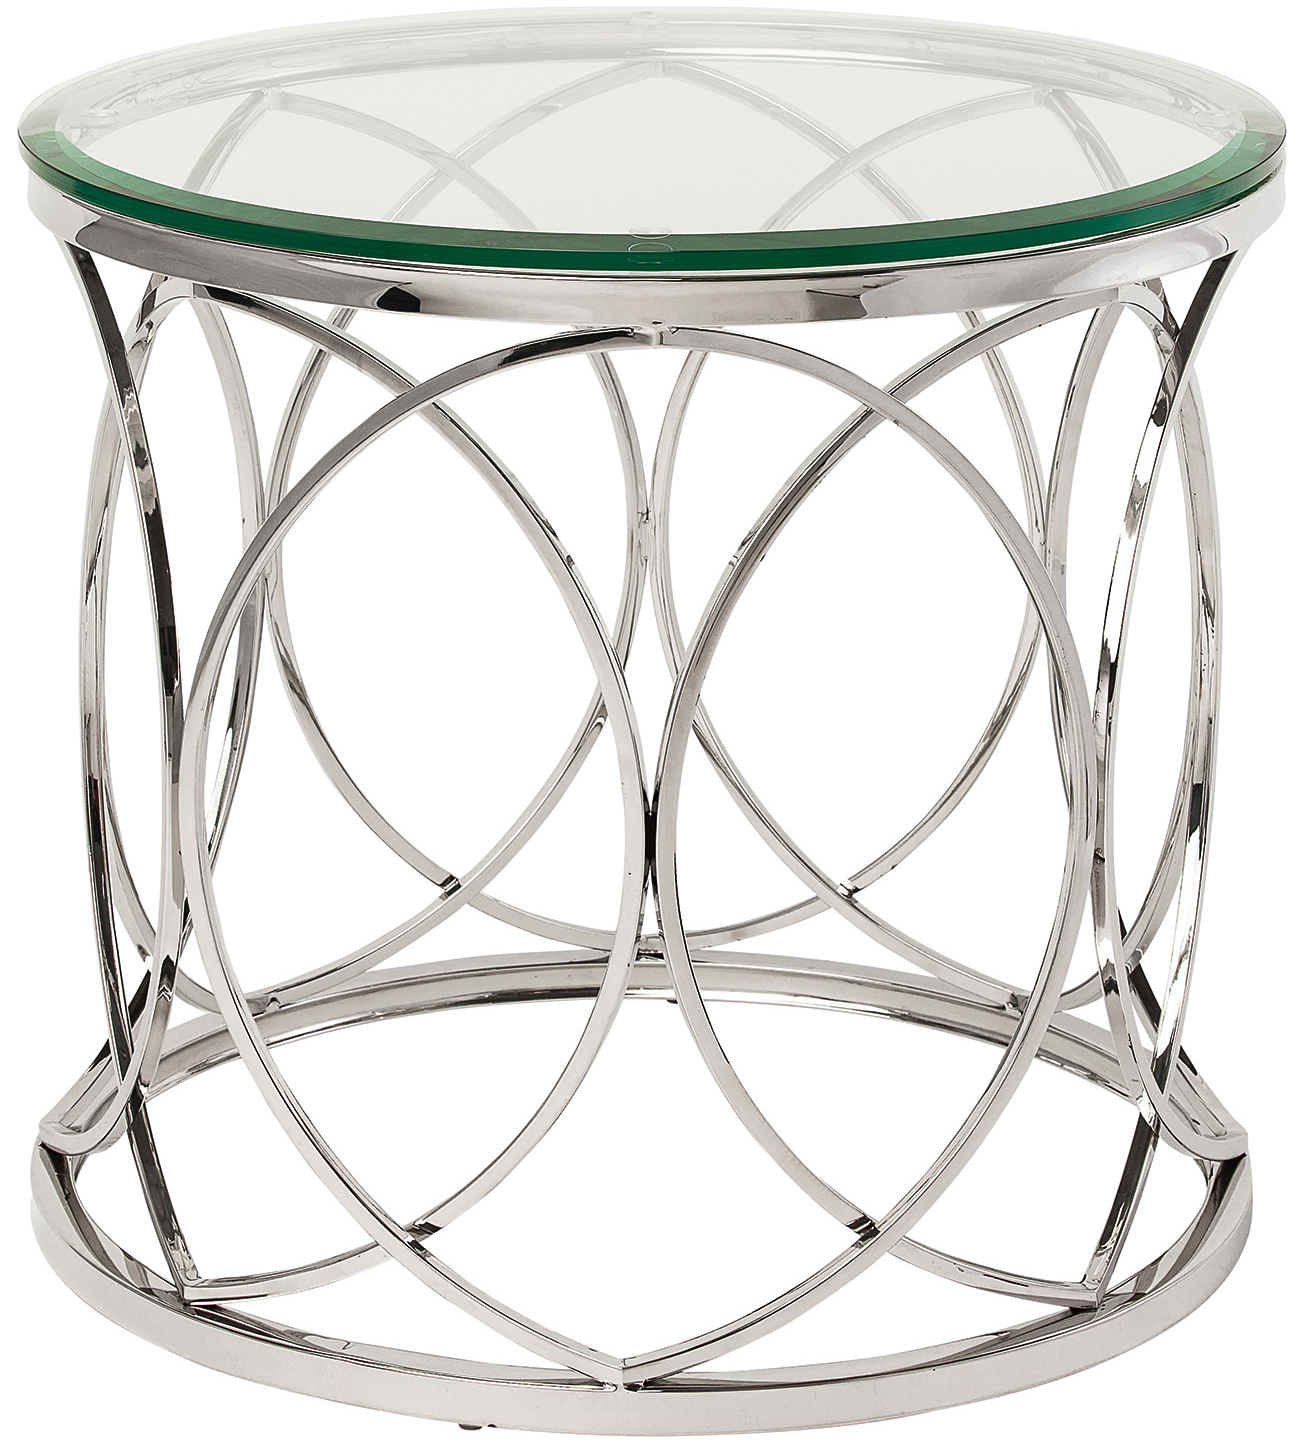 the nuevo hgtb238 juliette side table